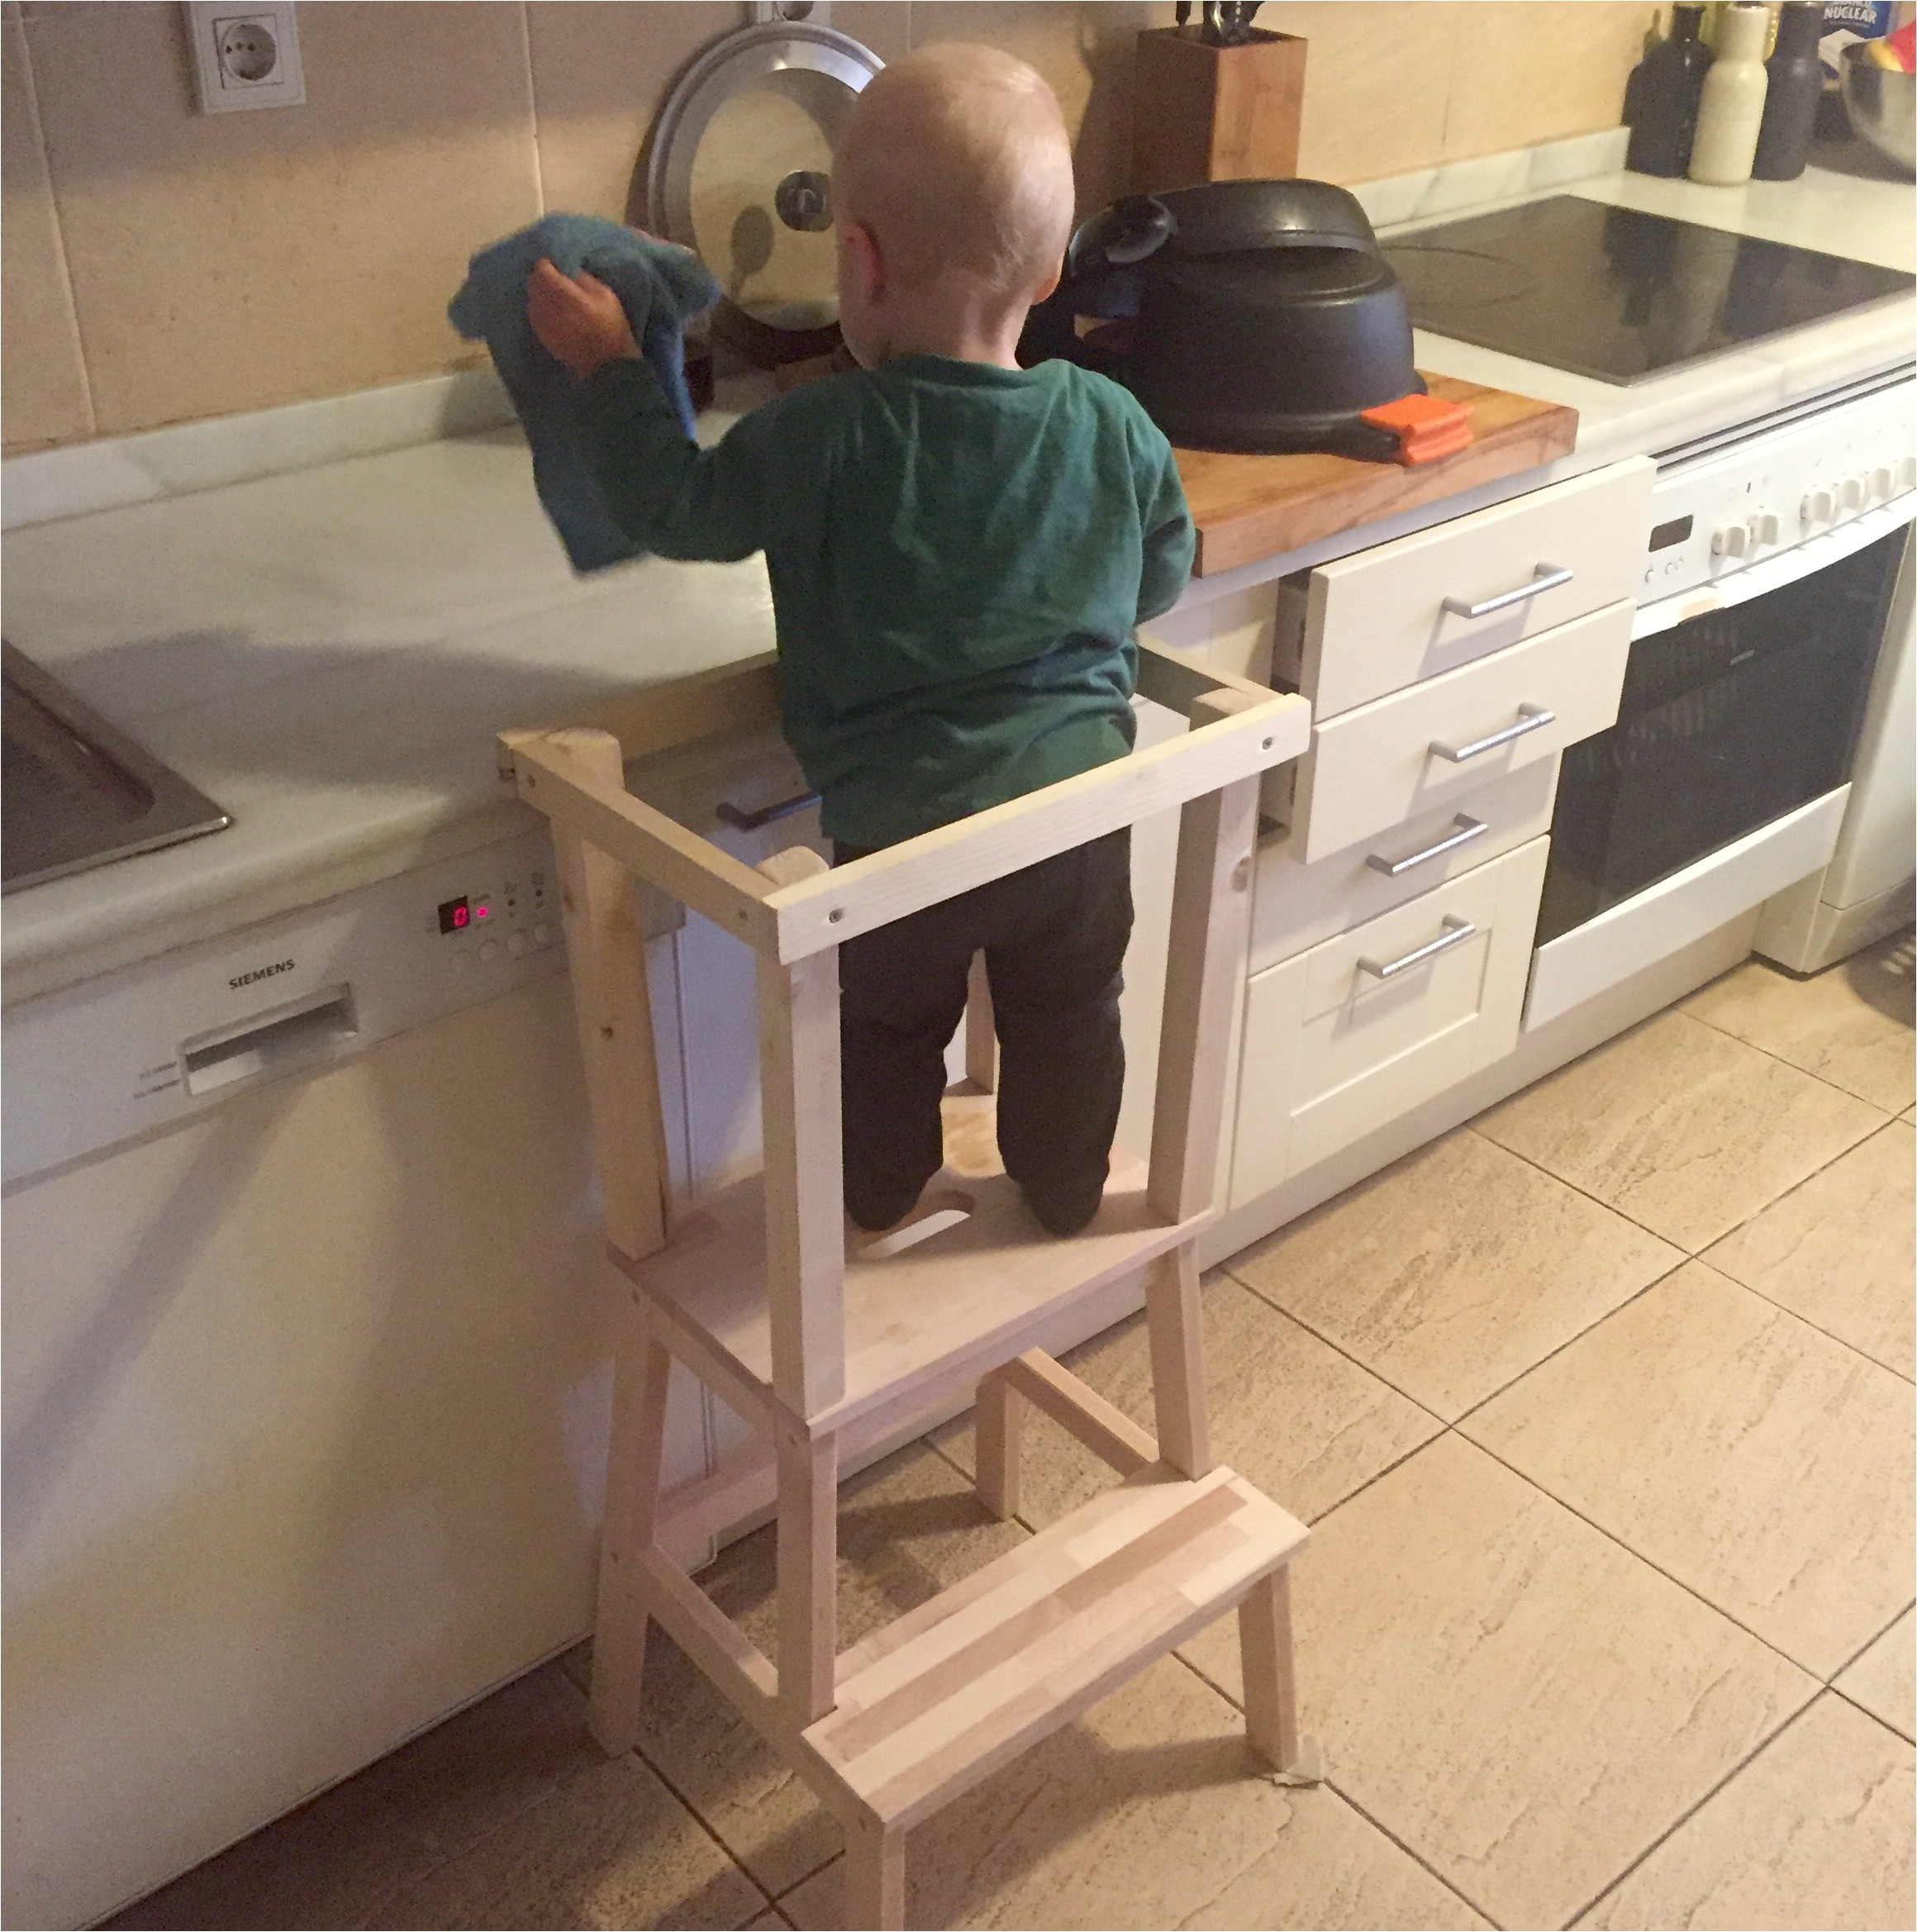 Diy toddler Step Stool with Rails Learning tower Ikea Little Helper Stool Sd toddler with